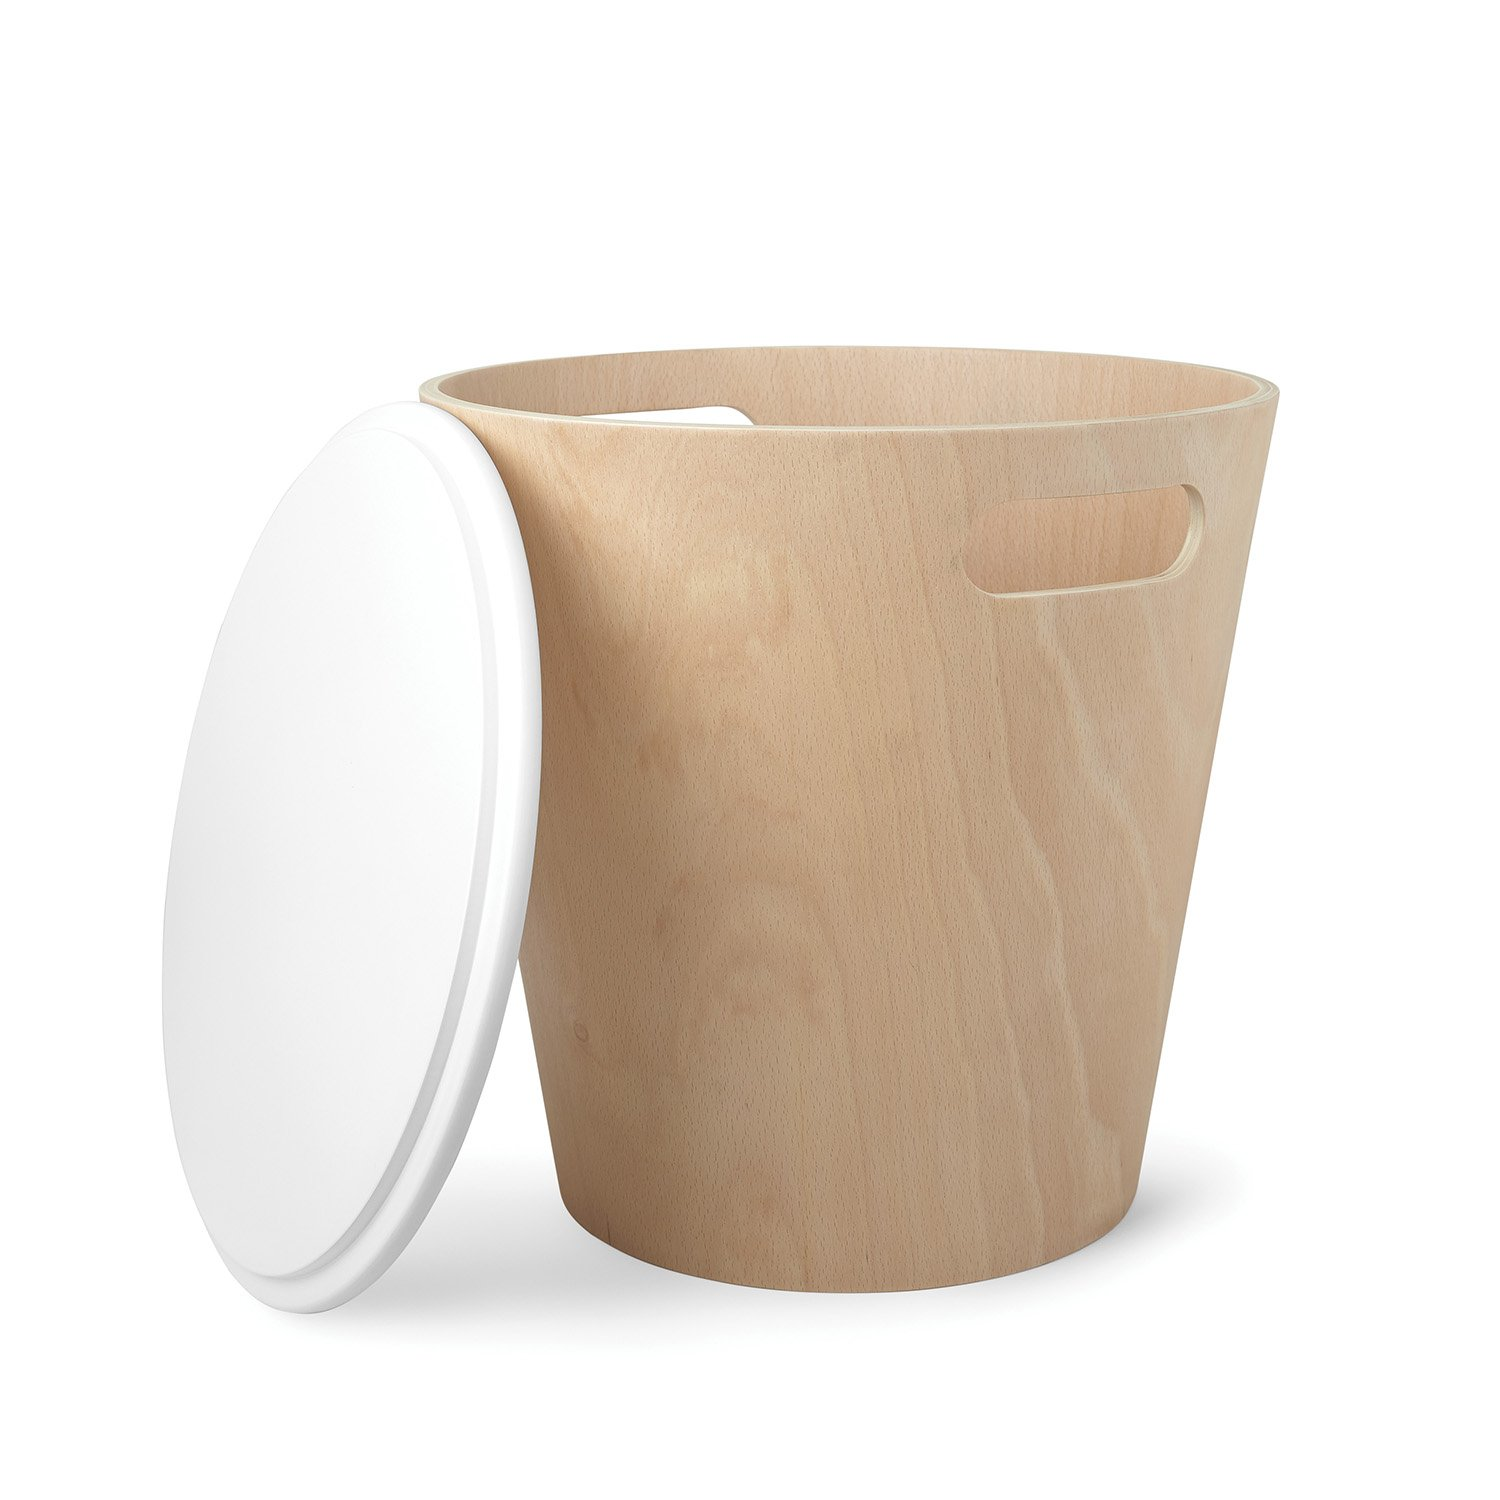 Umbra Woodrow Storage Ottoman, Modern Round Ottoman with Natural Wood Base, White Tabletop Lid, Great for Small Spaces